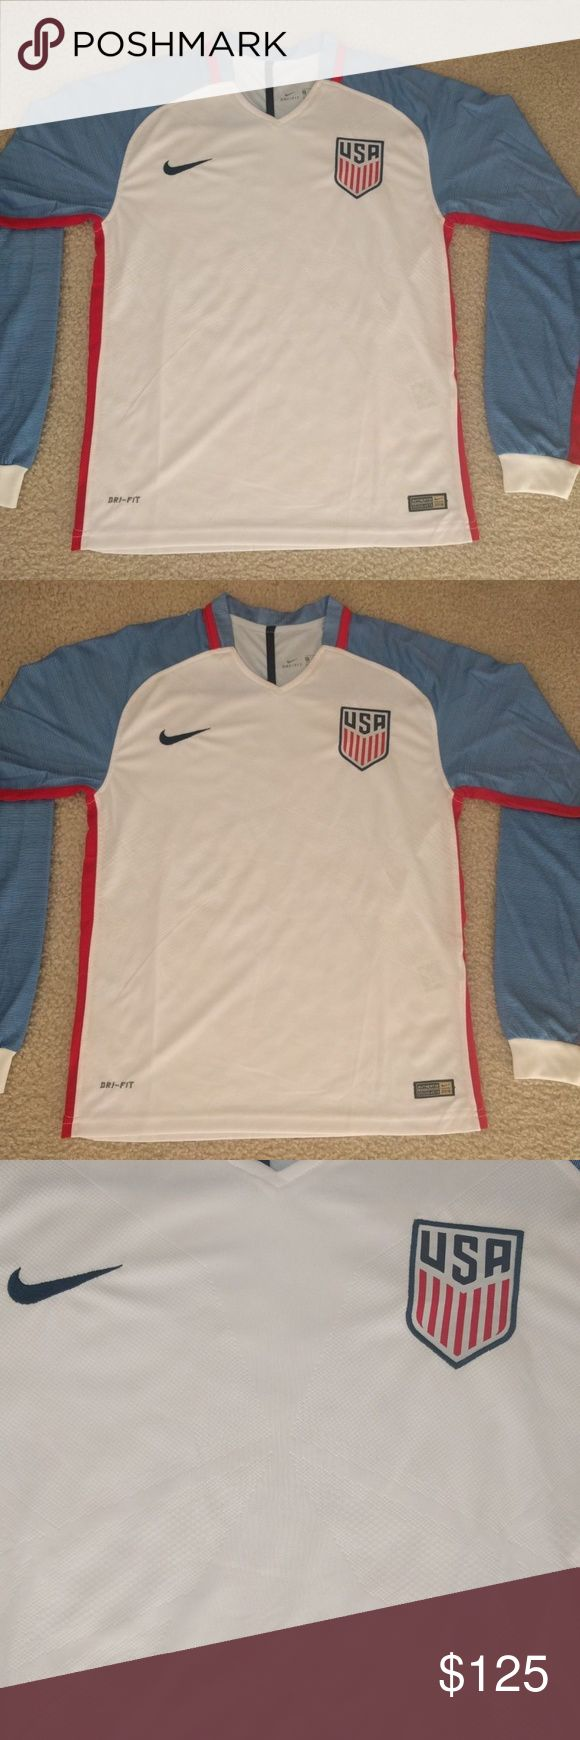 USA Soccer Jersey US USMNT Rare Player Issue Match USA Soccer Jersey US USMNT Rare Player Issue Match Long Sleeve Size Medium  Nike USA soccer jersey in a men's size medium. Jersey is player issue, which means it fits tighter than regular jerseys. Rare player issue long sleeve.Worn by the USMNT during the 2016 Copa America and 2018 World Cup Qualifiers. Nike Shirts Tees - Long Sleeve